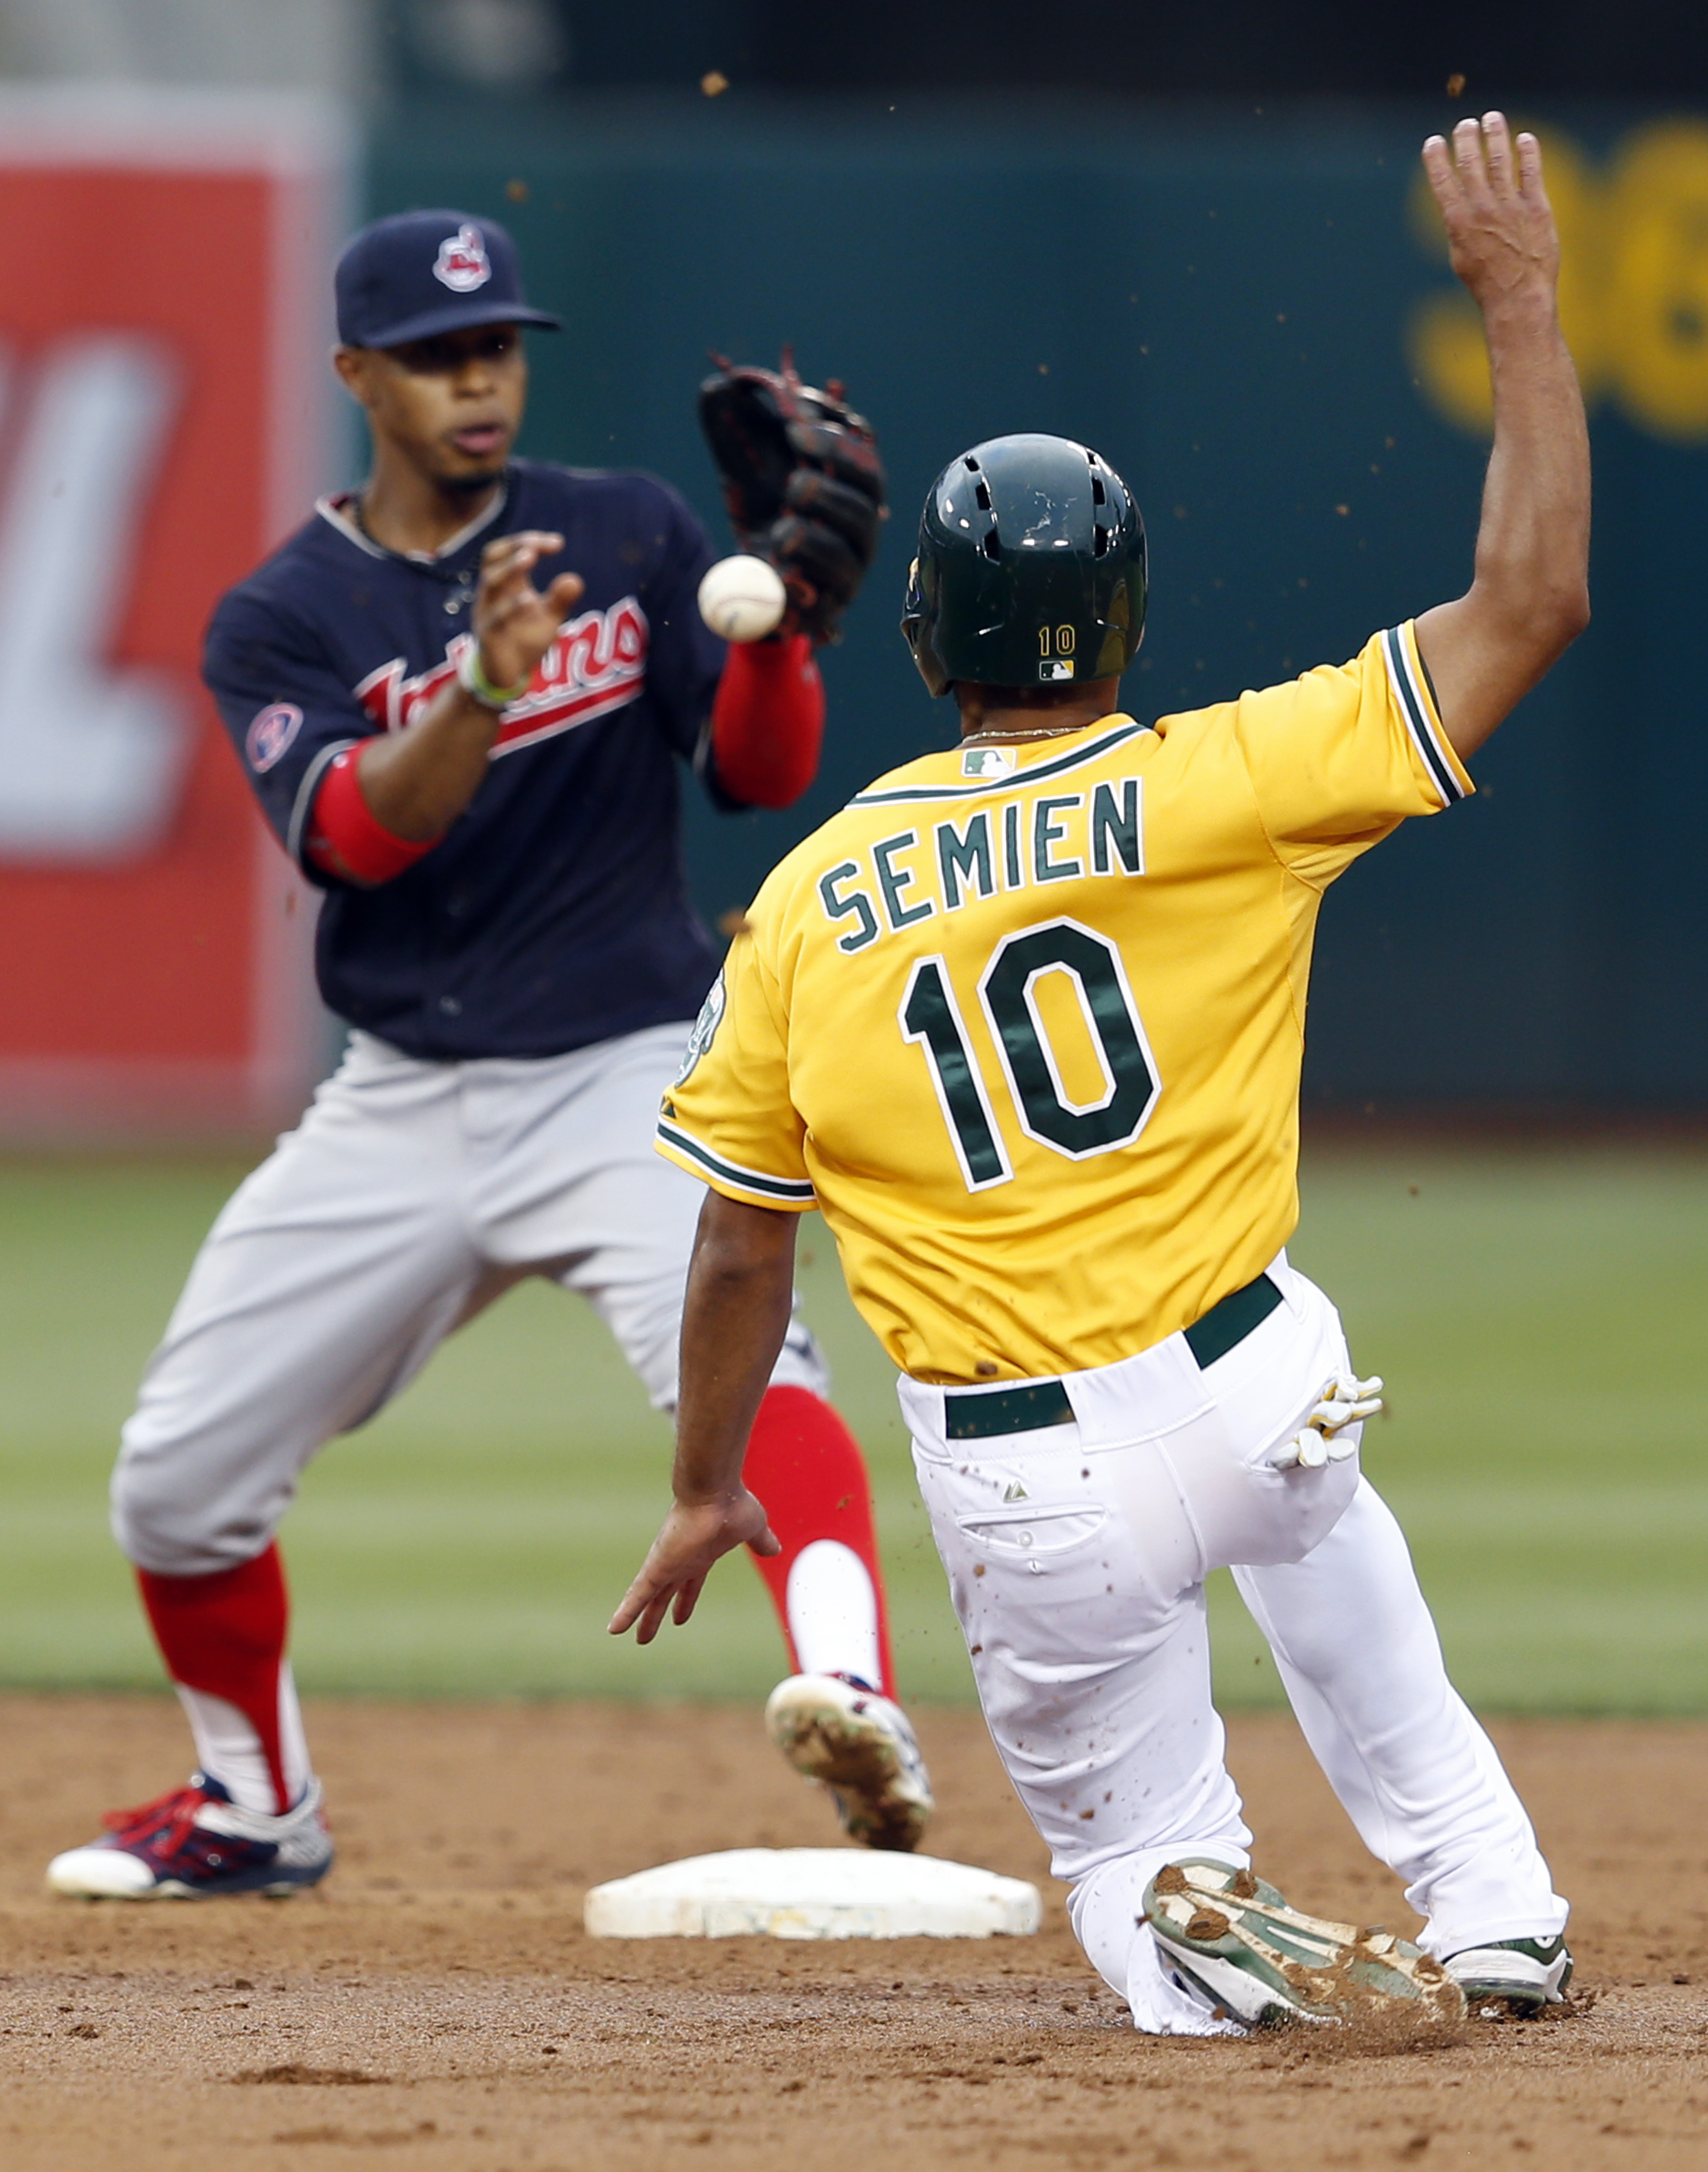 Cleveland Indians' Francisco Lindor (12) forces Oakland Athletics' Marcus Semien (10) out as he breaks up a double play attempt in the third inning of a MLB game at O.co Coliseum in Oakland, Calif., on Friday, July 31, 2015. (Ray Chavez/Bay Area News Grou